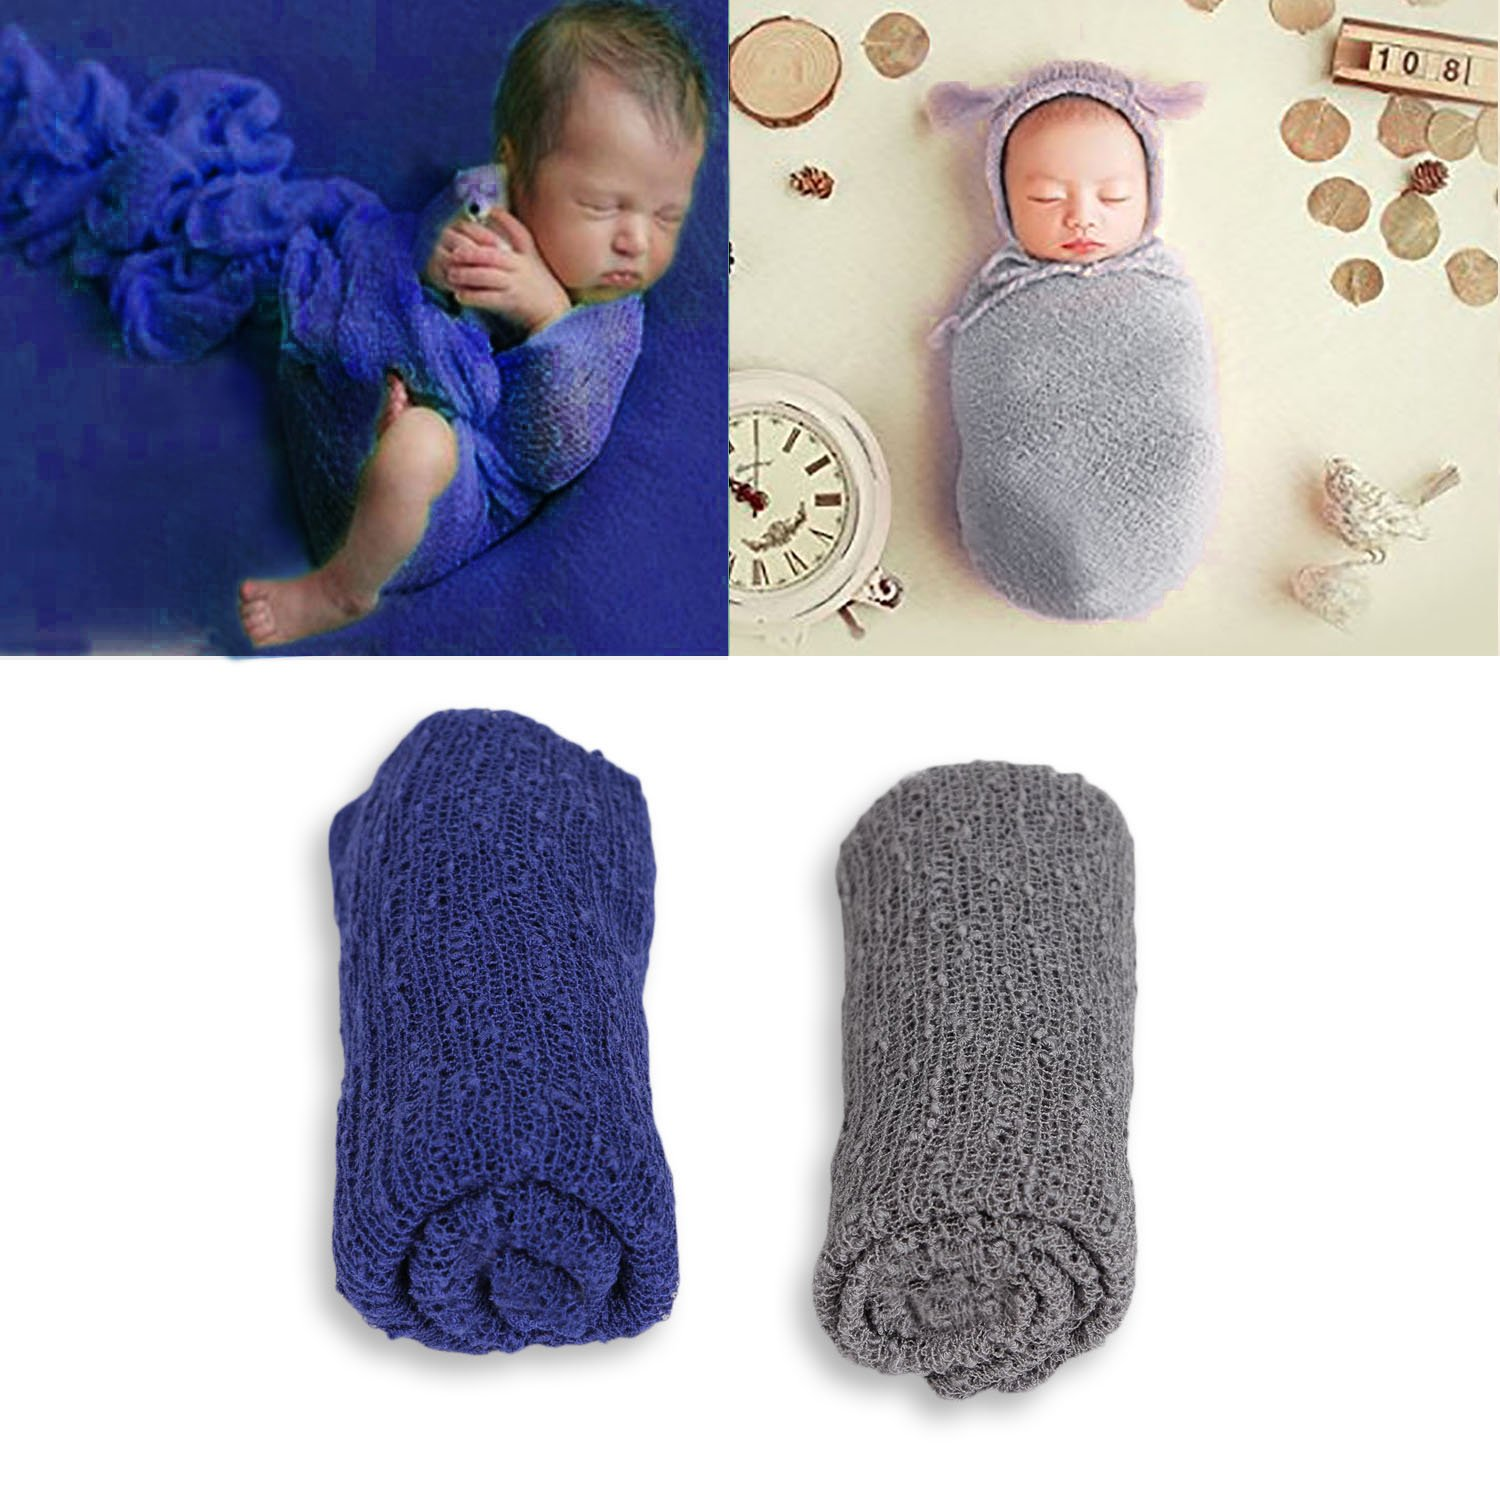 Aniwon 2 Pcs Baby Photography Props Photo Long Ripple Wrap Blanket for Newborn